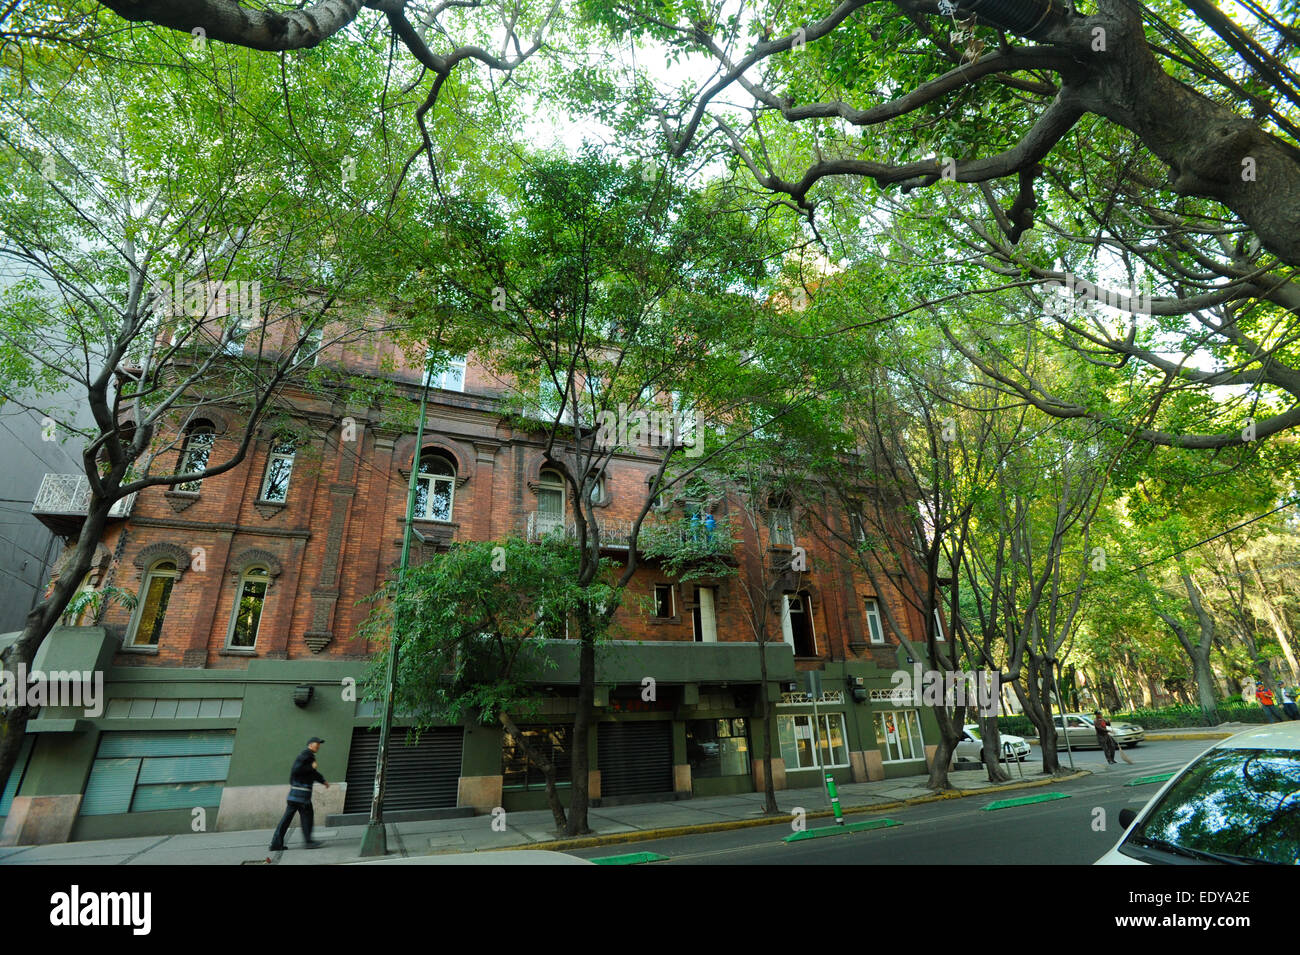 Old building in the Zona Rosa neighborhood of Mexico City, Mexico - Stock Image